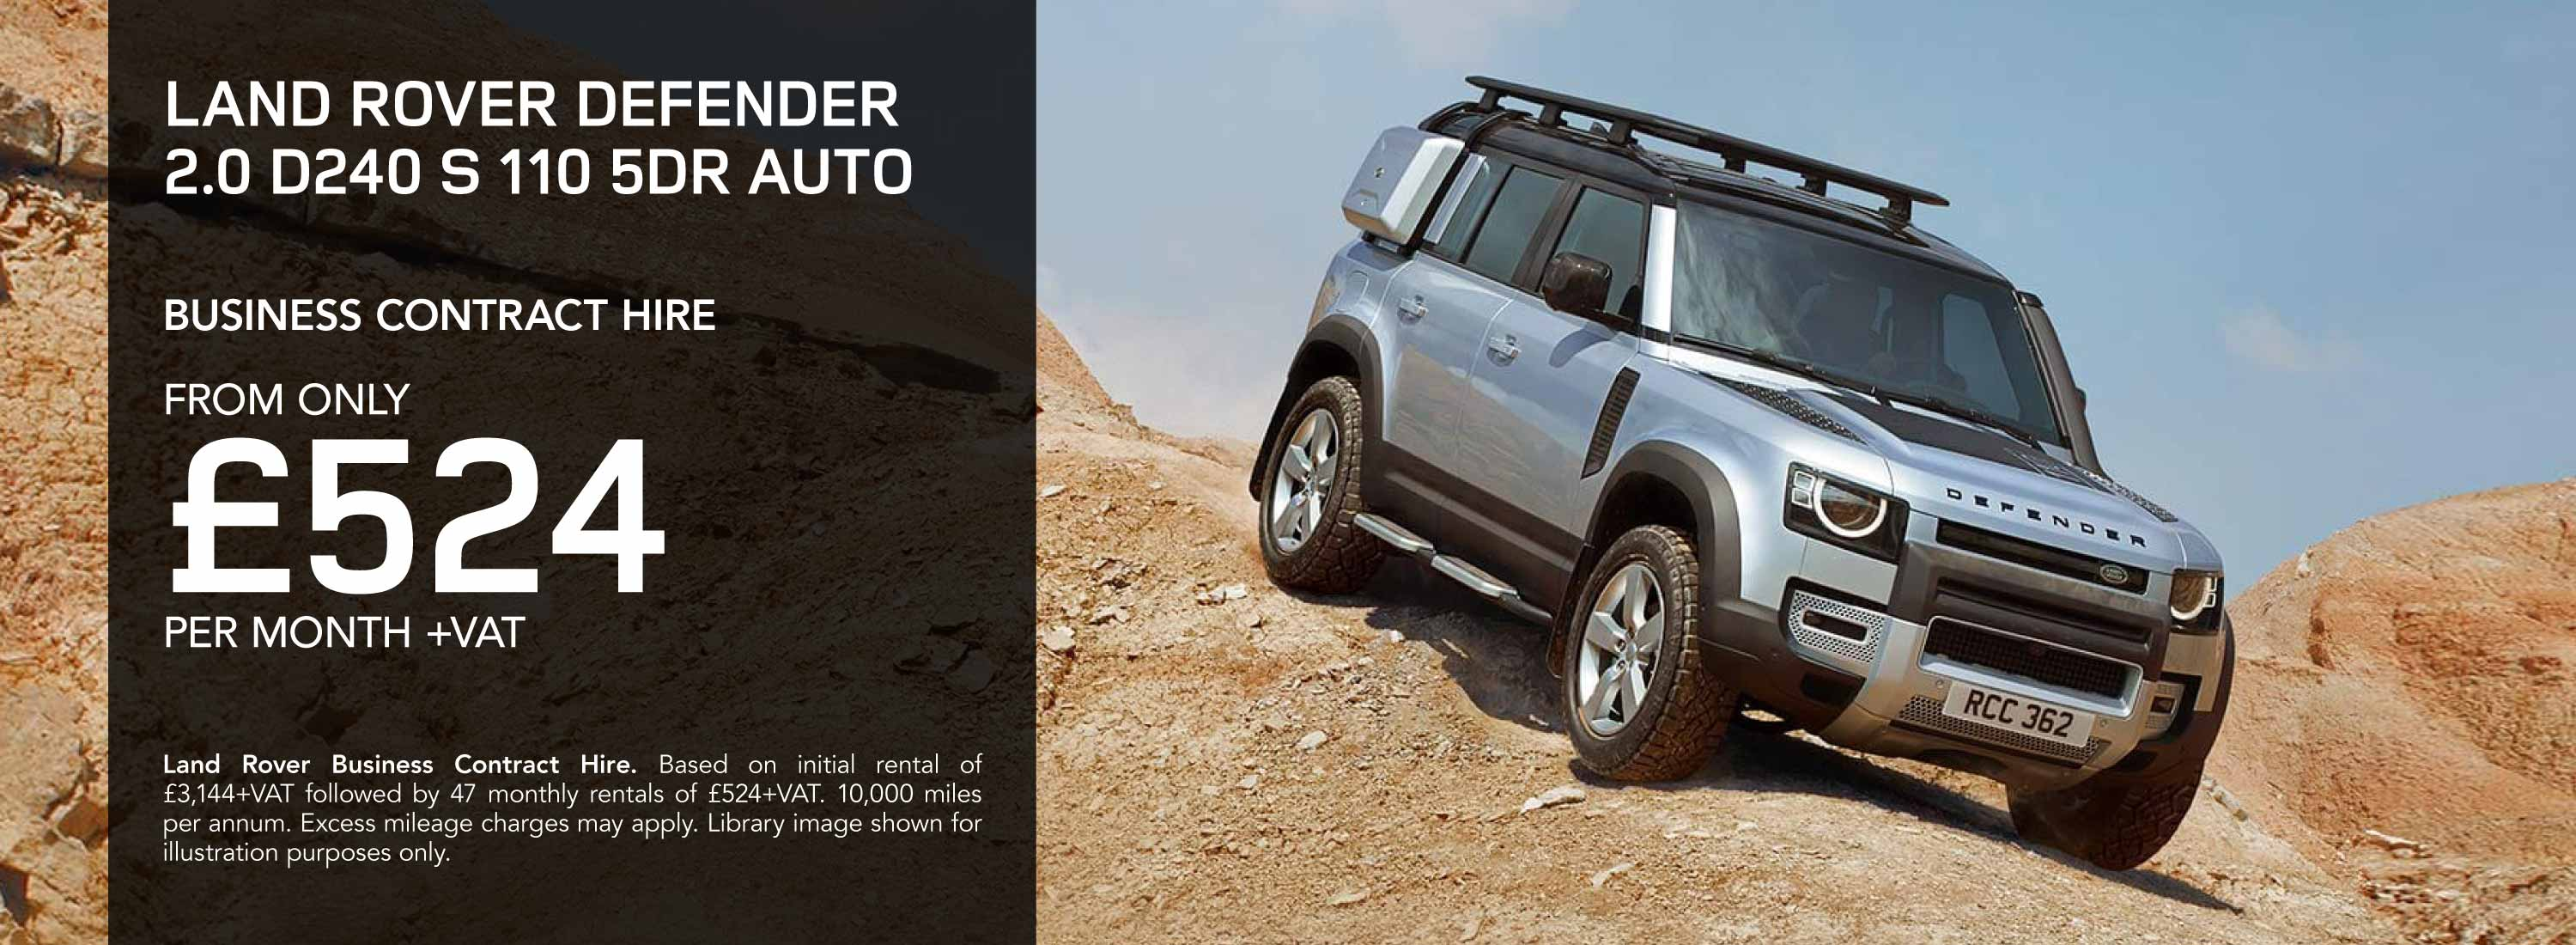 Land Rover Defender Business Contract Hire Offer